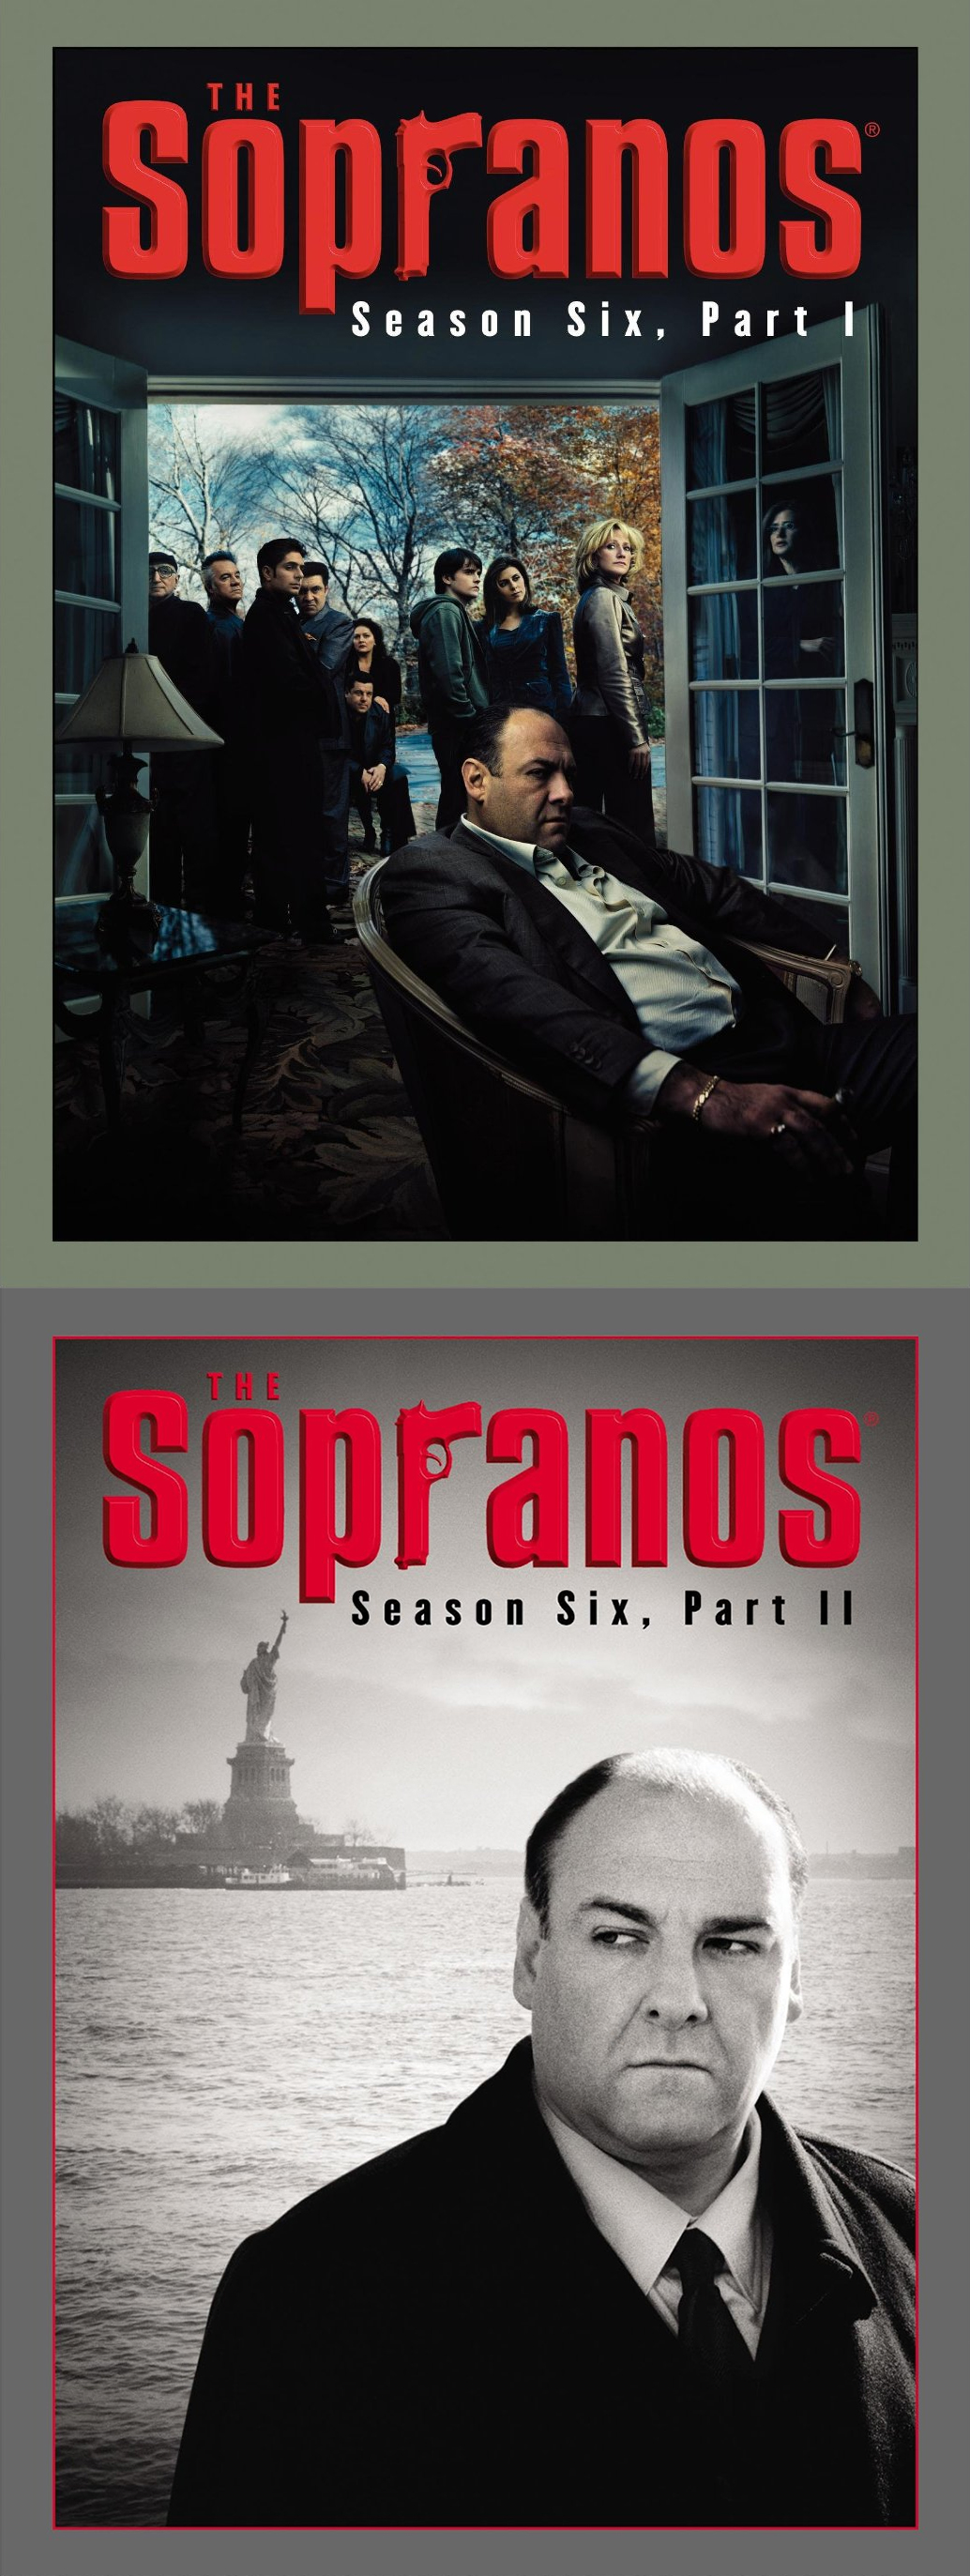 Season 6 | The Sopranos Wiki | FANDOM powered by Wikia